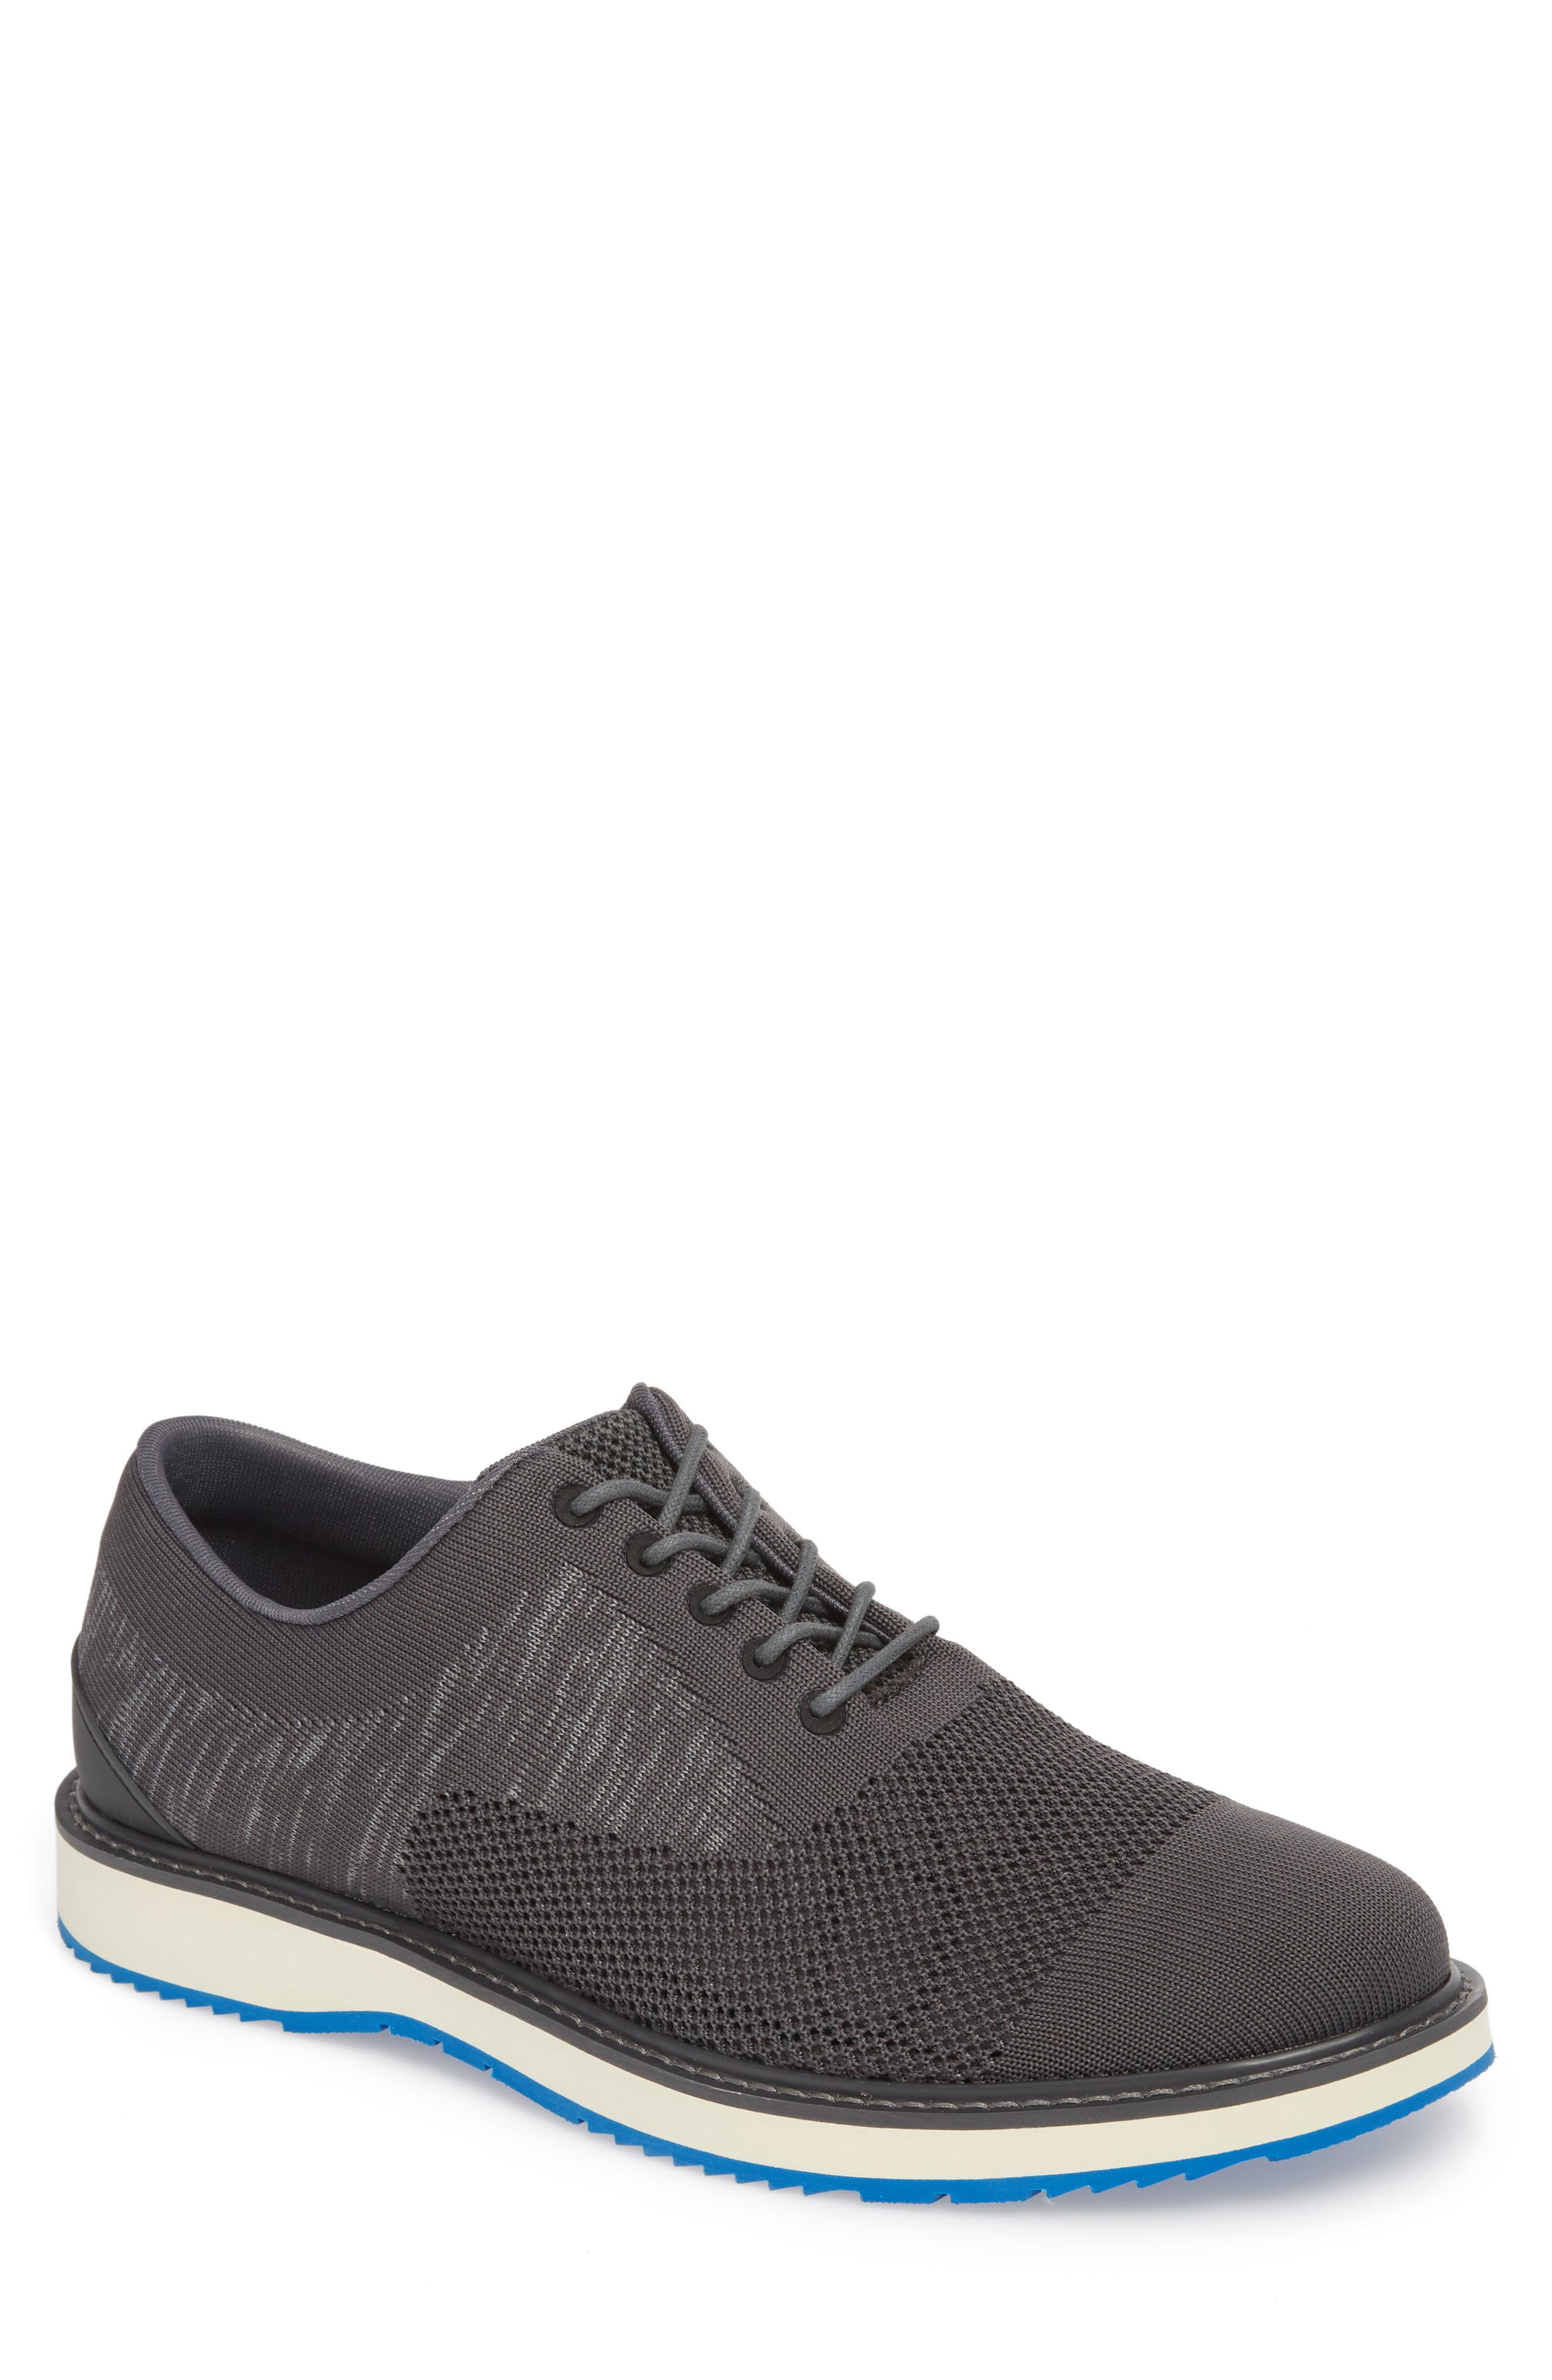 Barry Knit Oxford,                         Main,                         color, 021